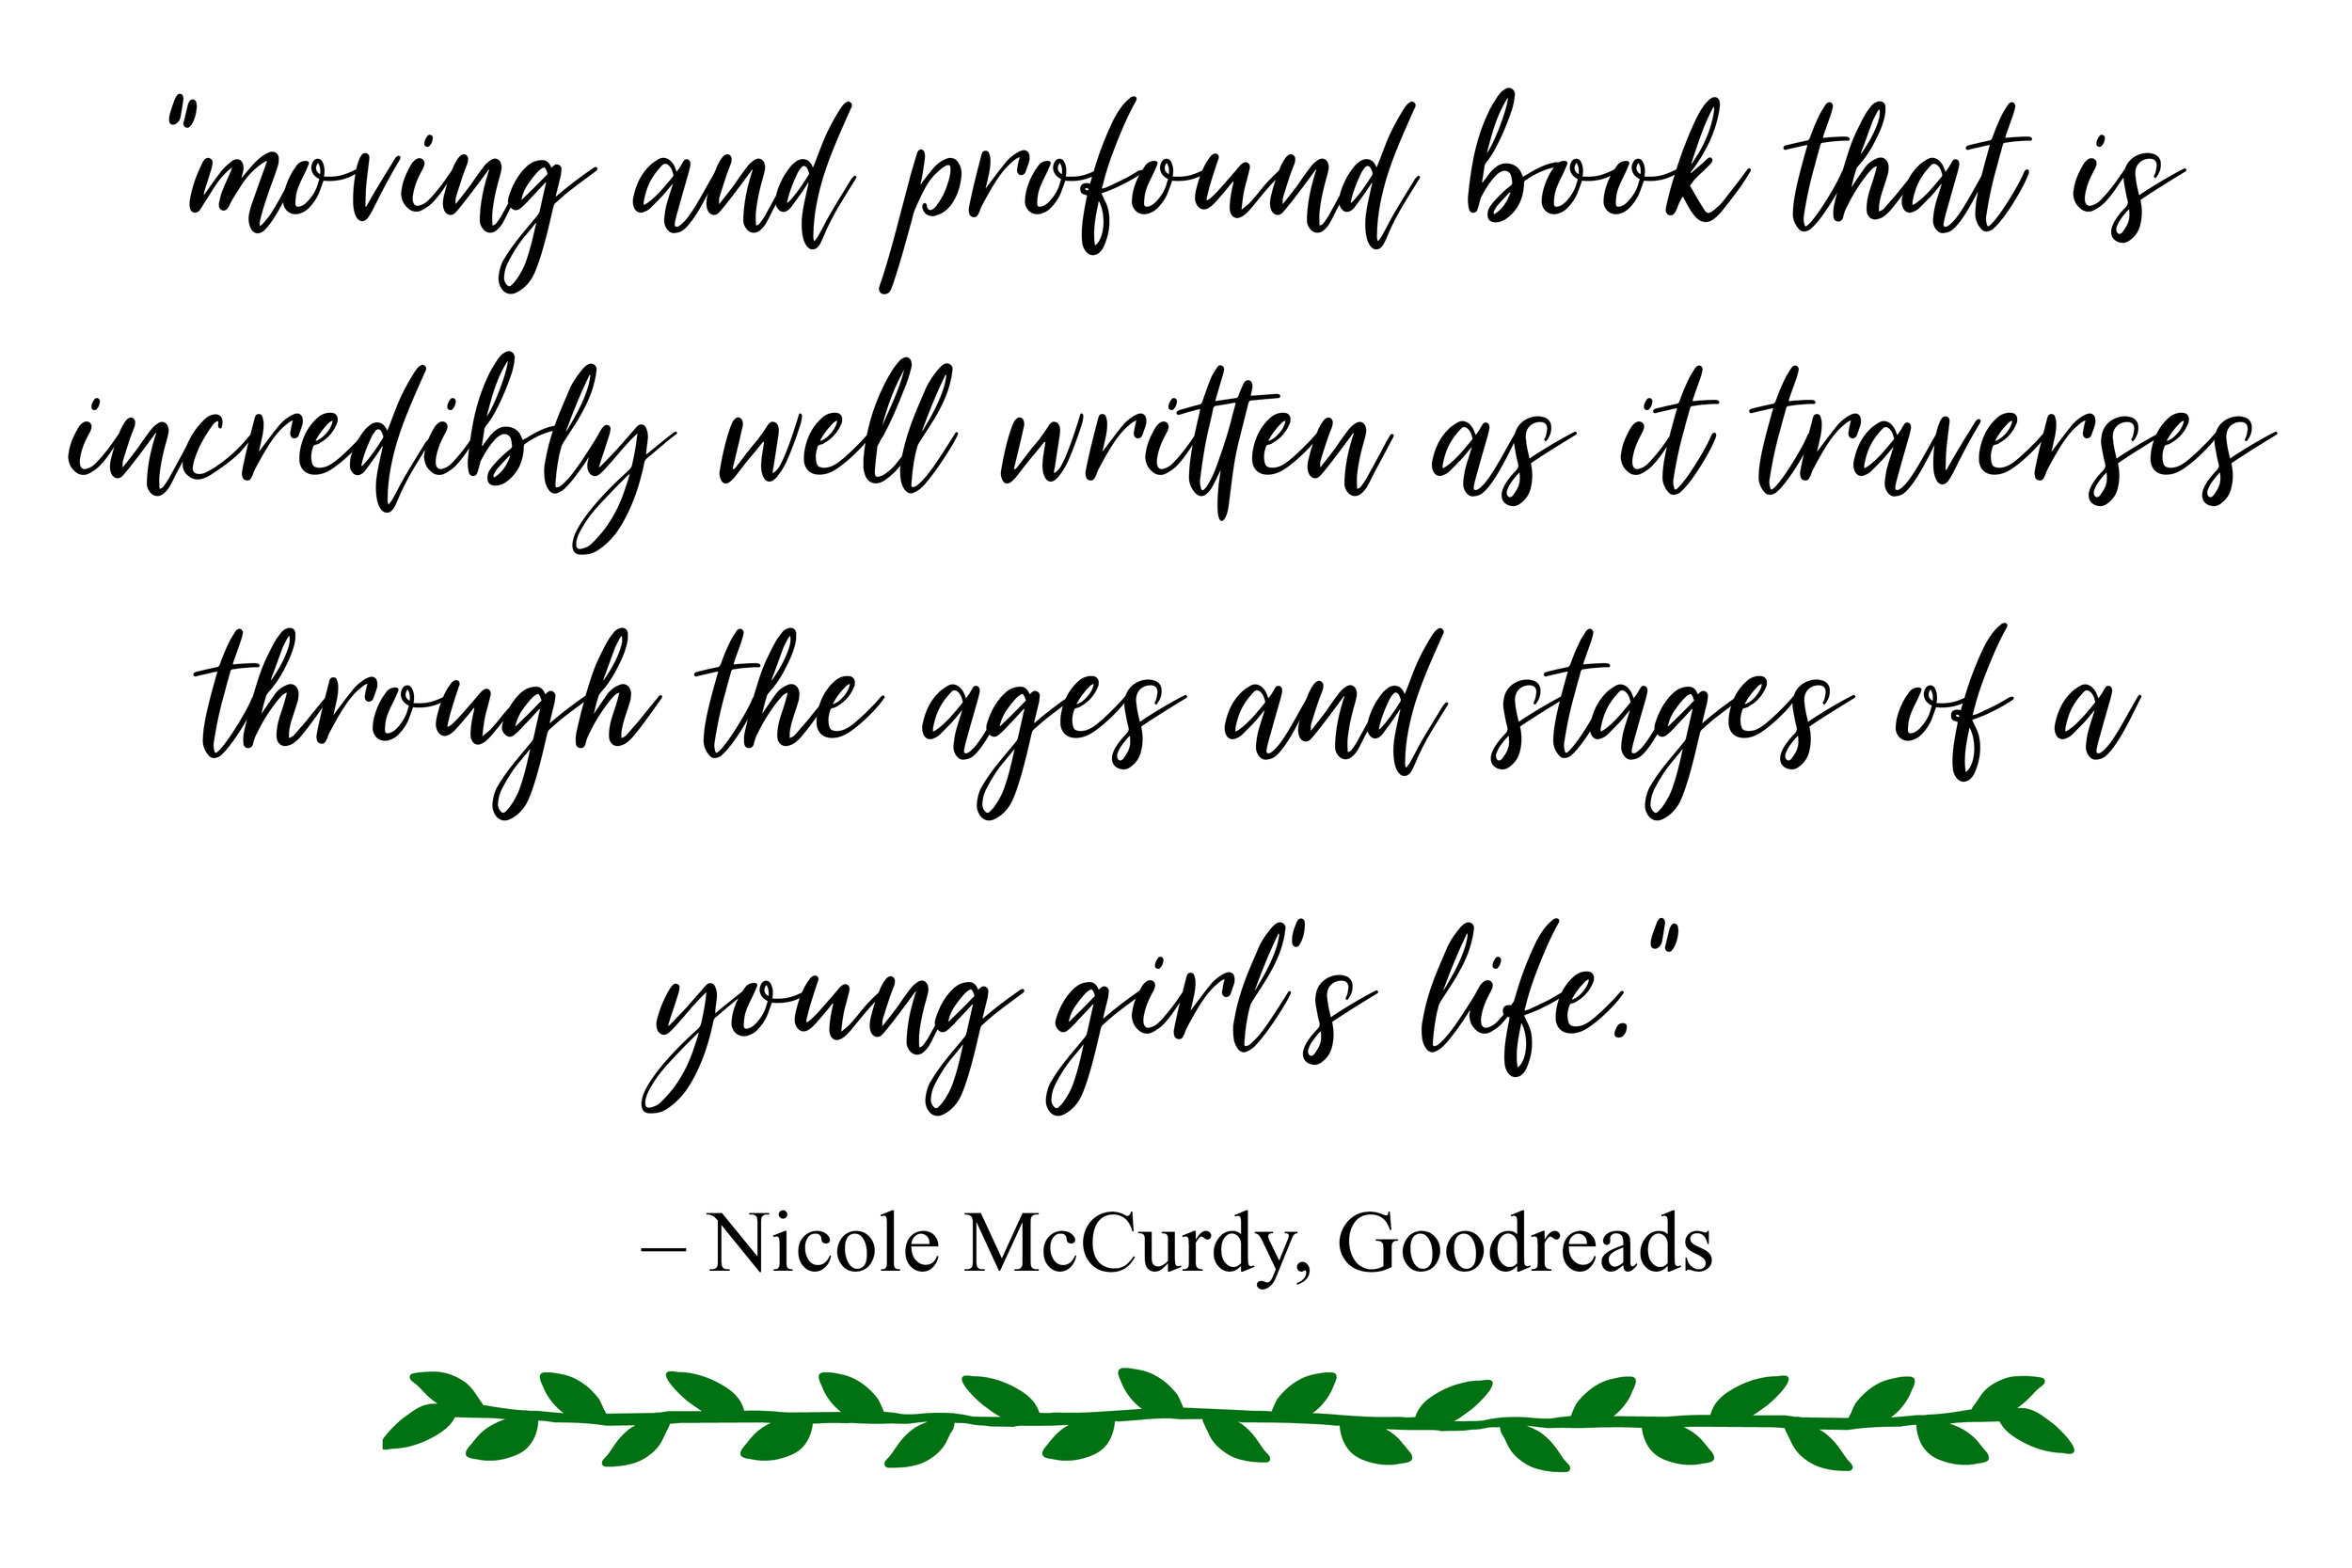 """A very moving and profound book that is incredibly well written as it traverses through the ages and stages of a young girl's life."" – Nicole McCurdy, Goodreads"